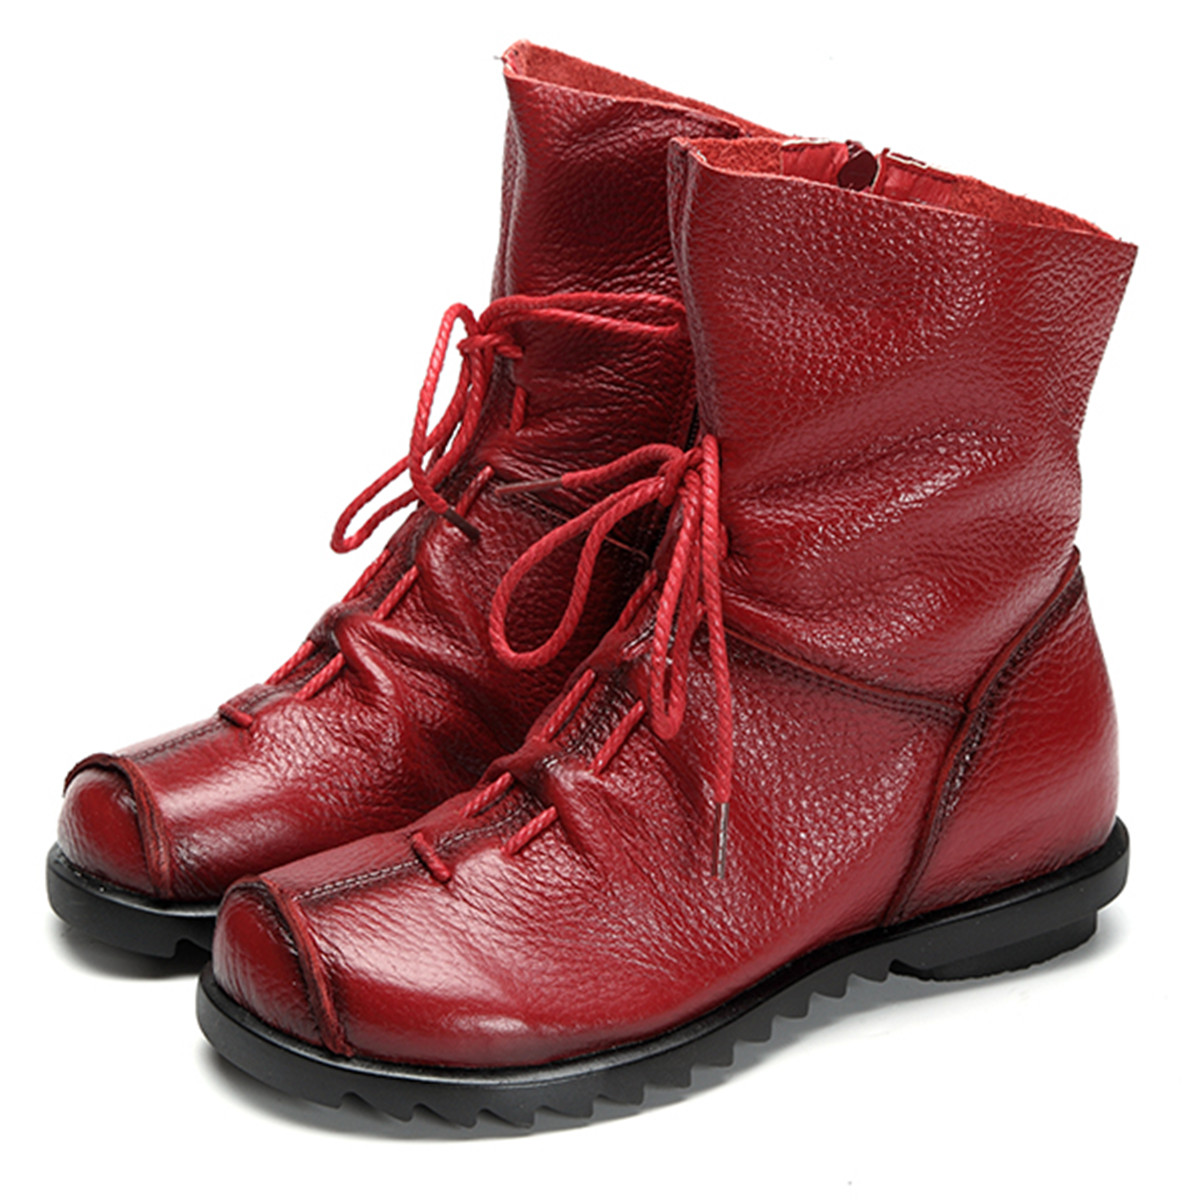 SOCOFY Lace Up Leather Ankle Boots